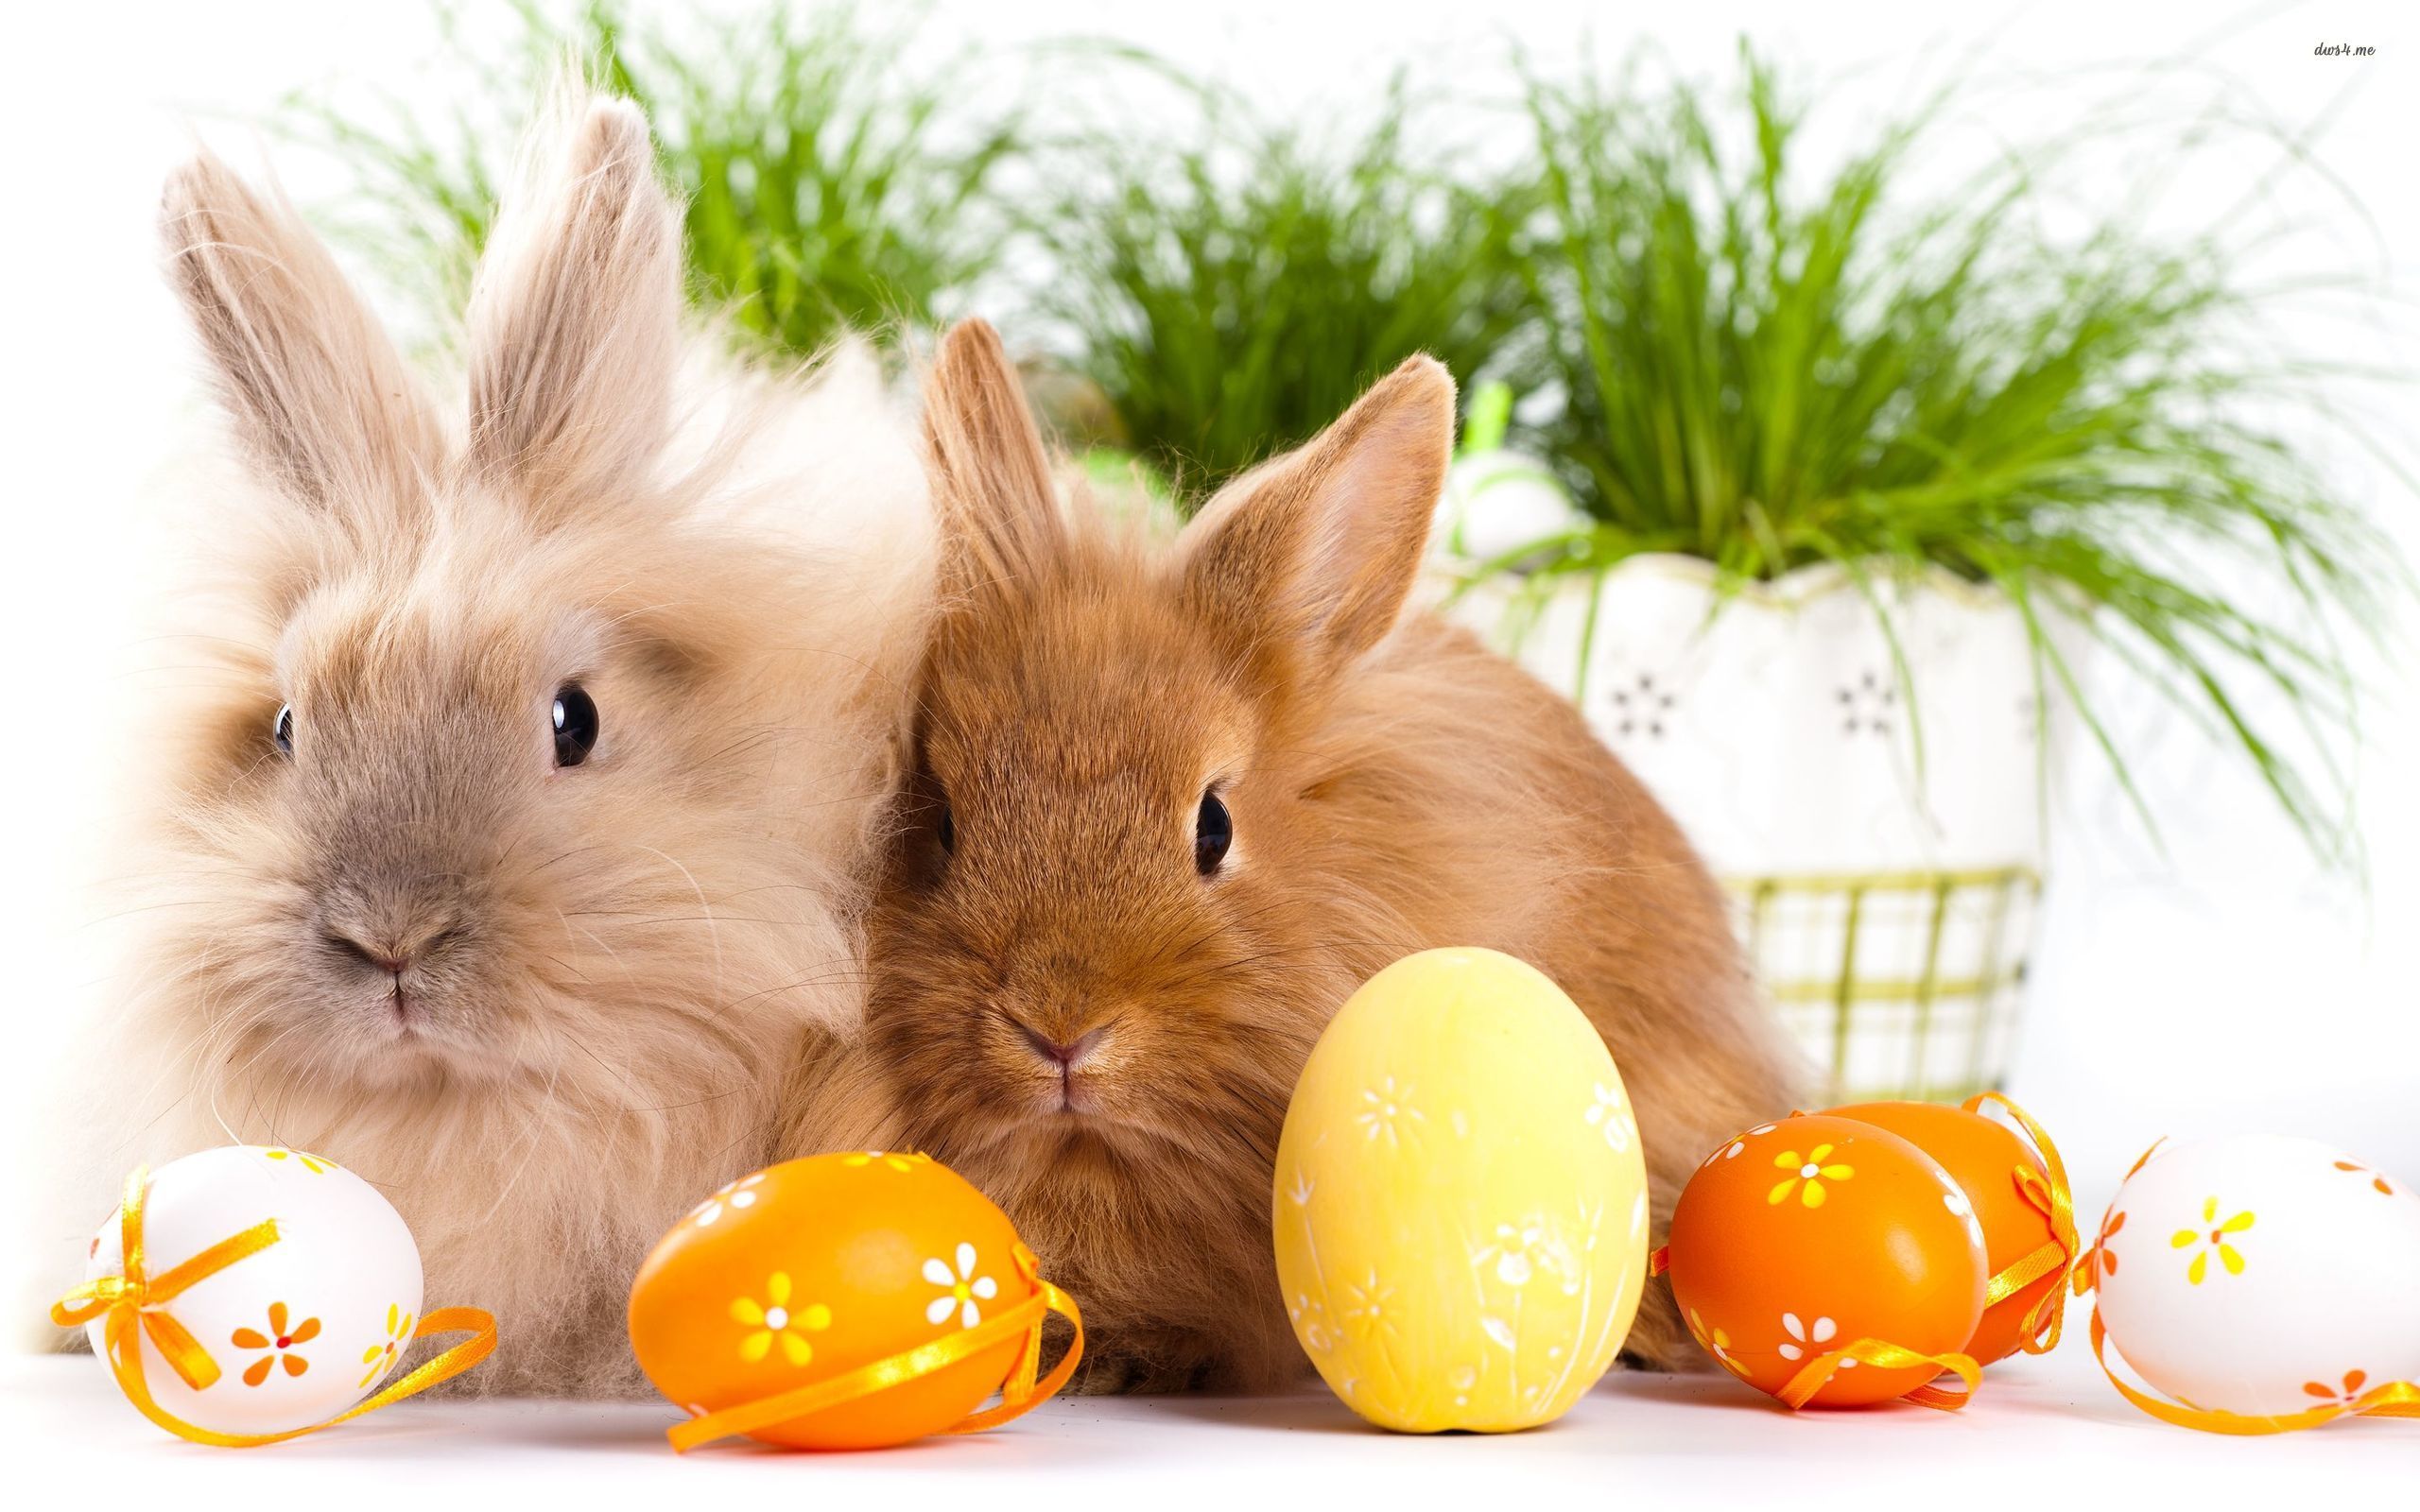 My Fanpop Friends and I images bunnies and eggs on easter day HD 2560x1600